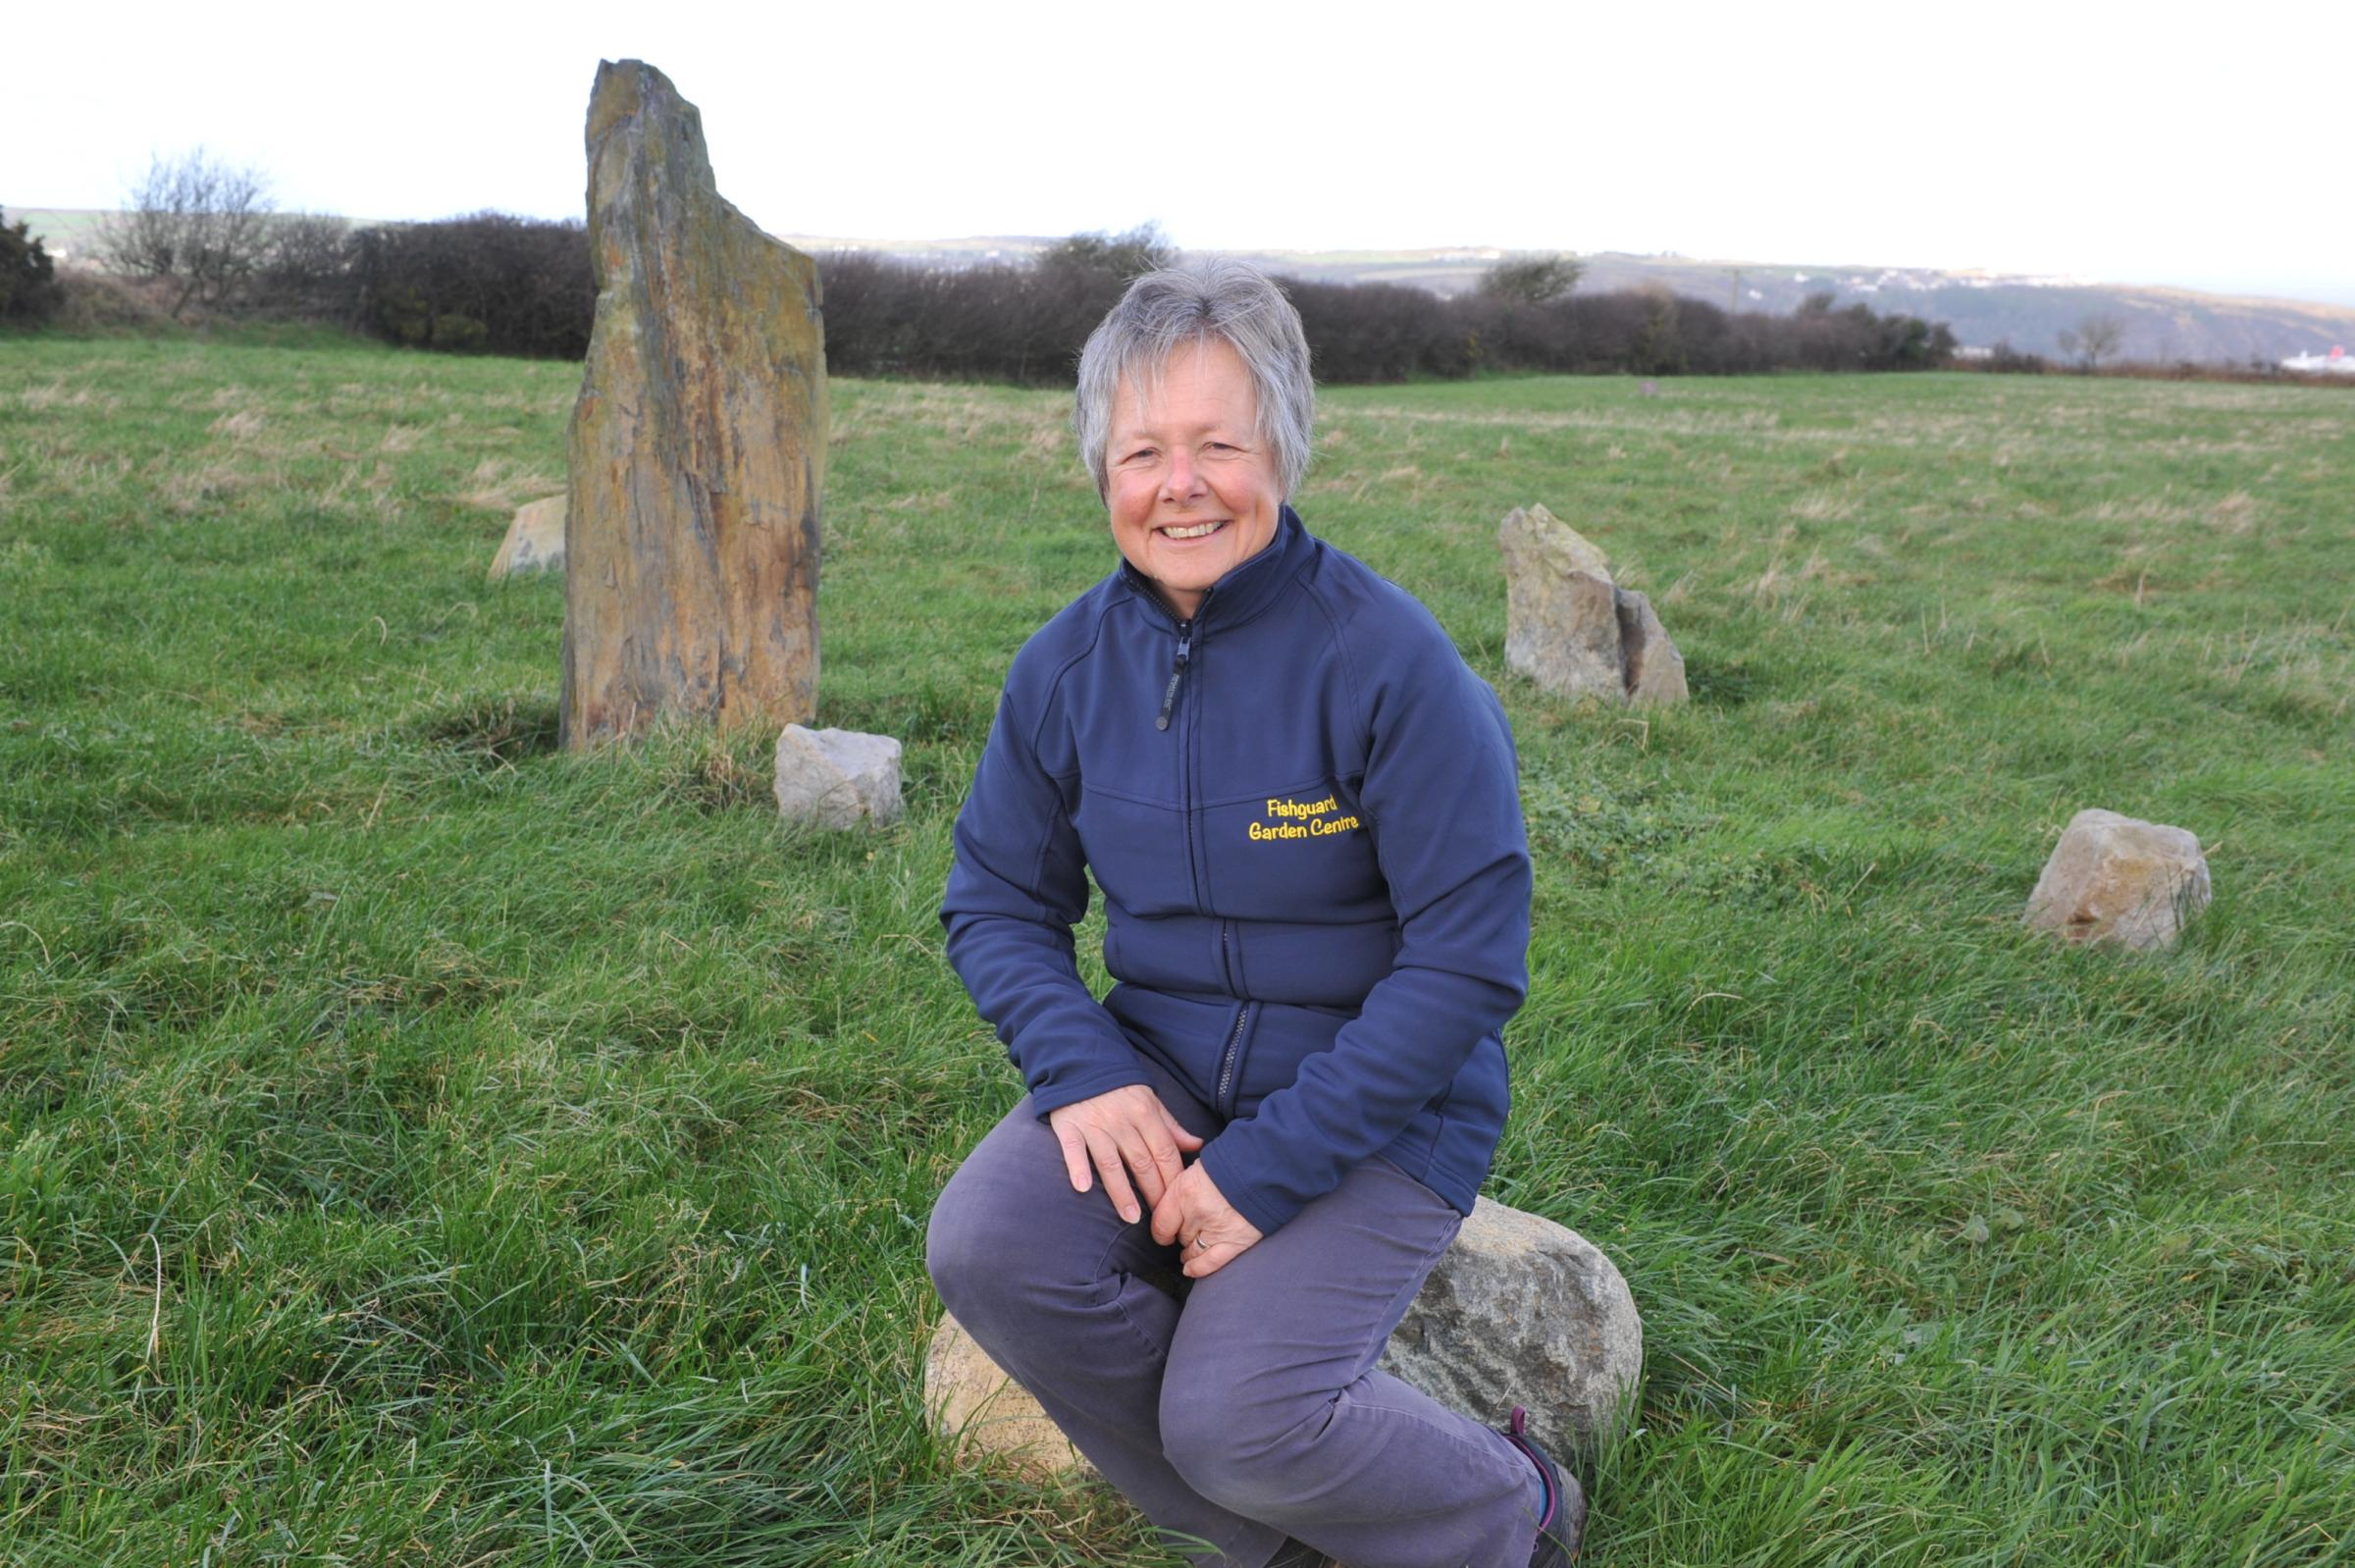 Gillian Chilton is pictured at a stone circle created at the campsite